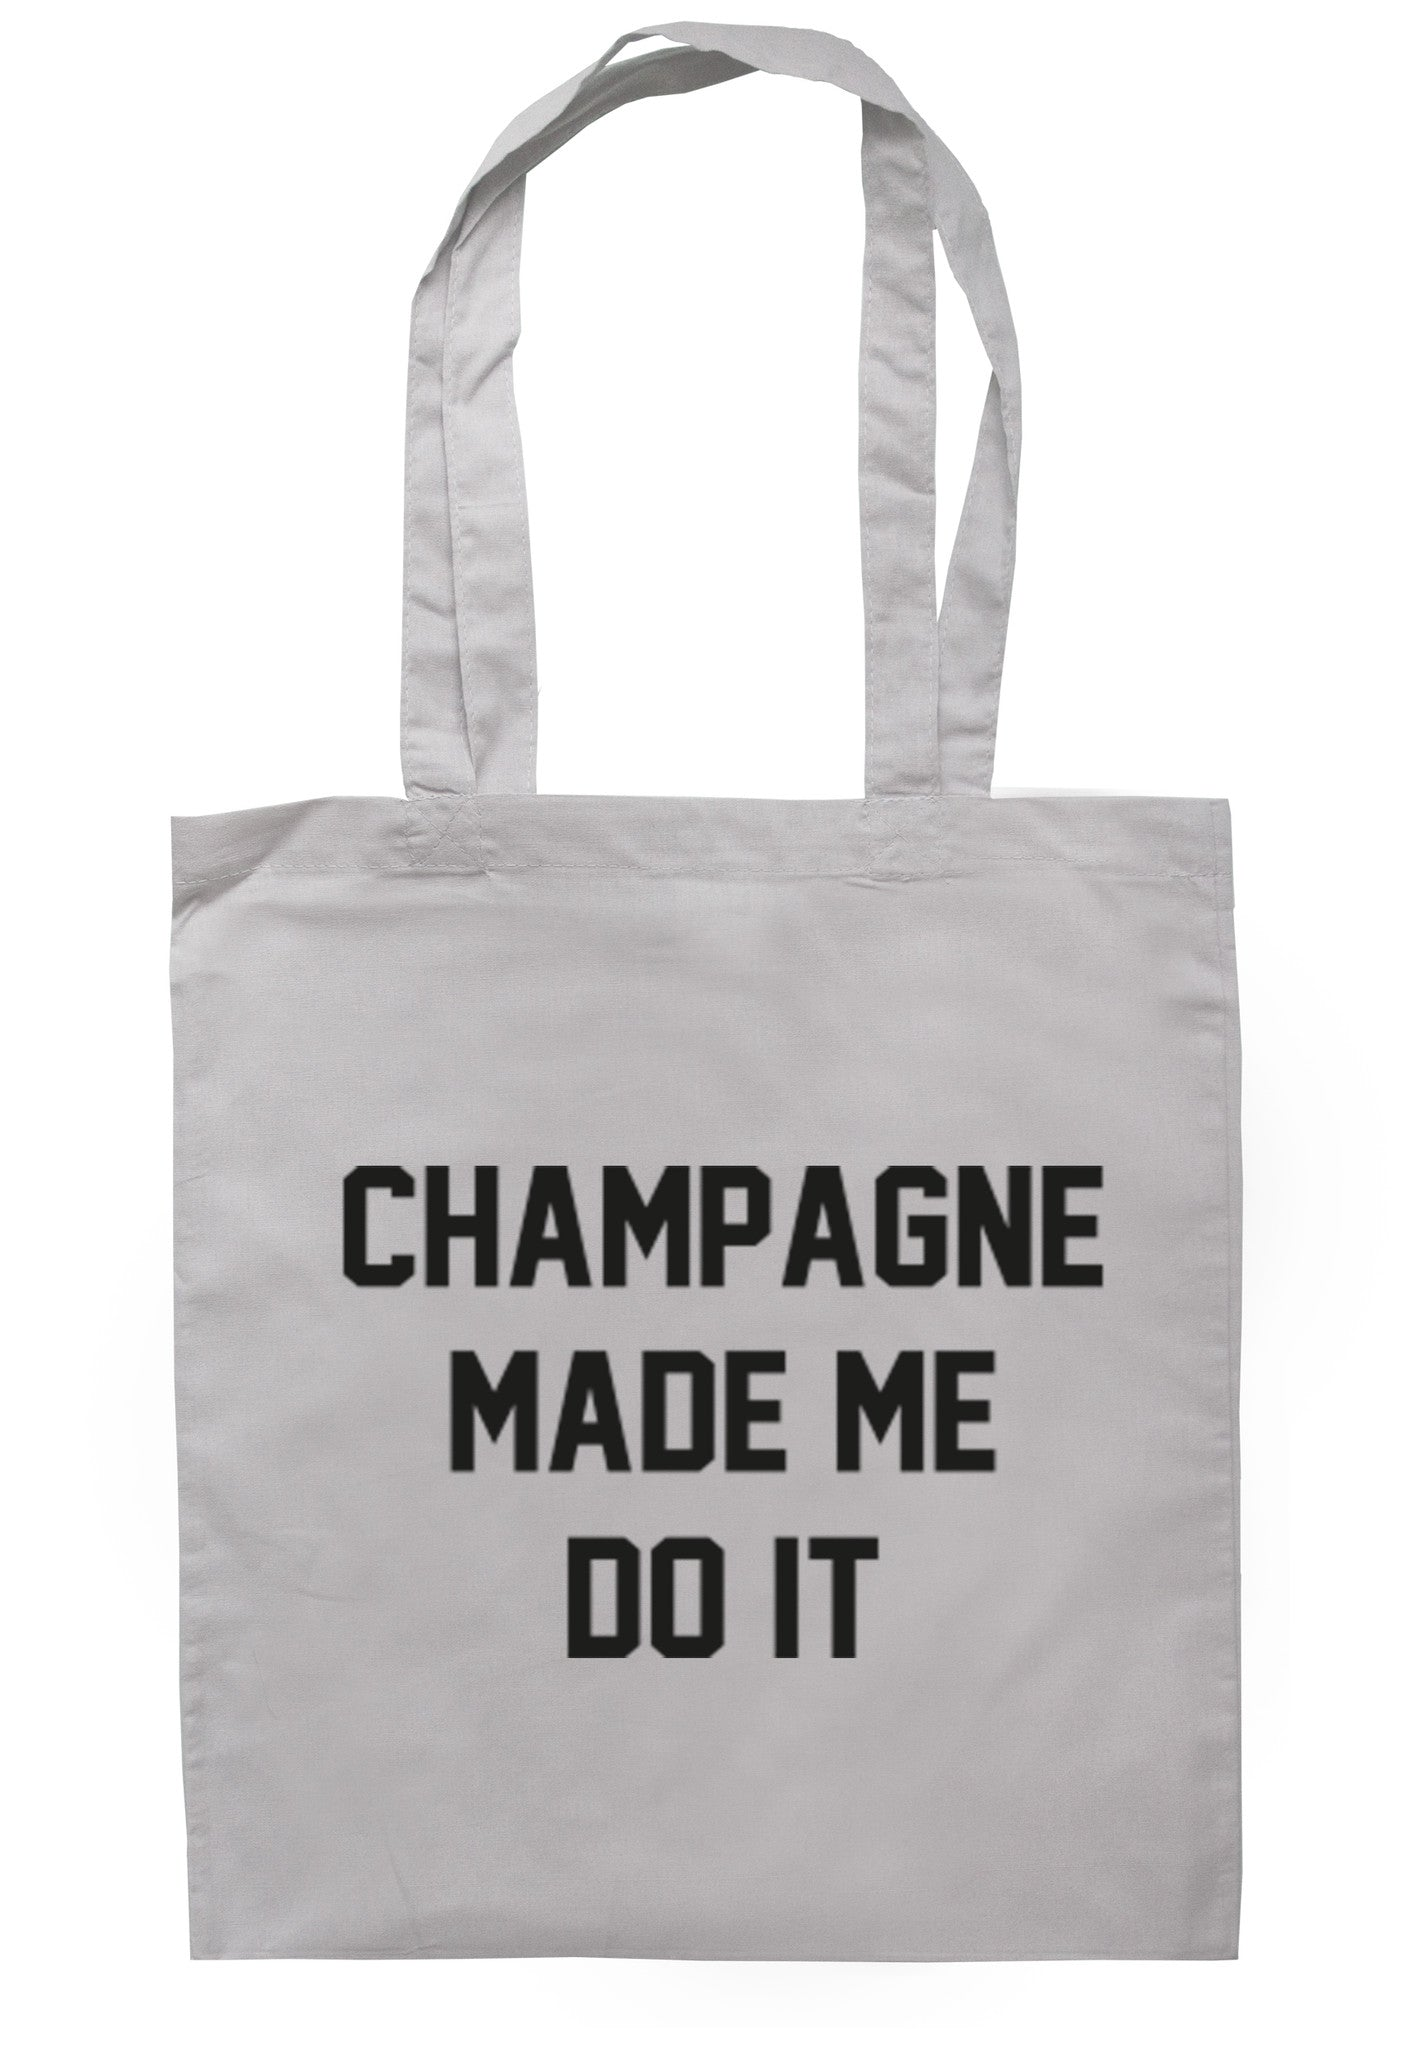 Champagne Made Me Do It Tote Bag TB0014 - Illustrated Identity Ltd.